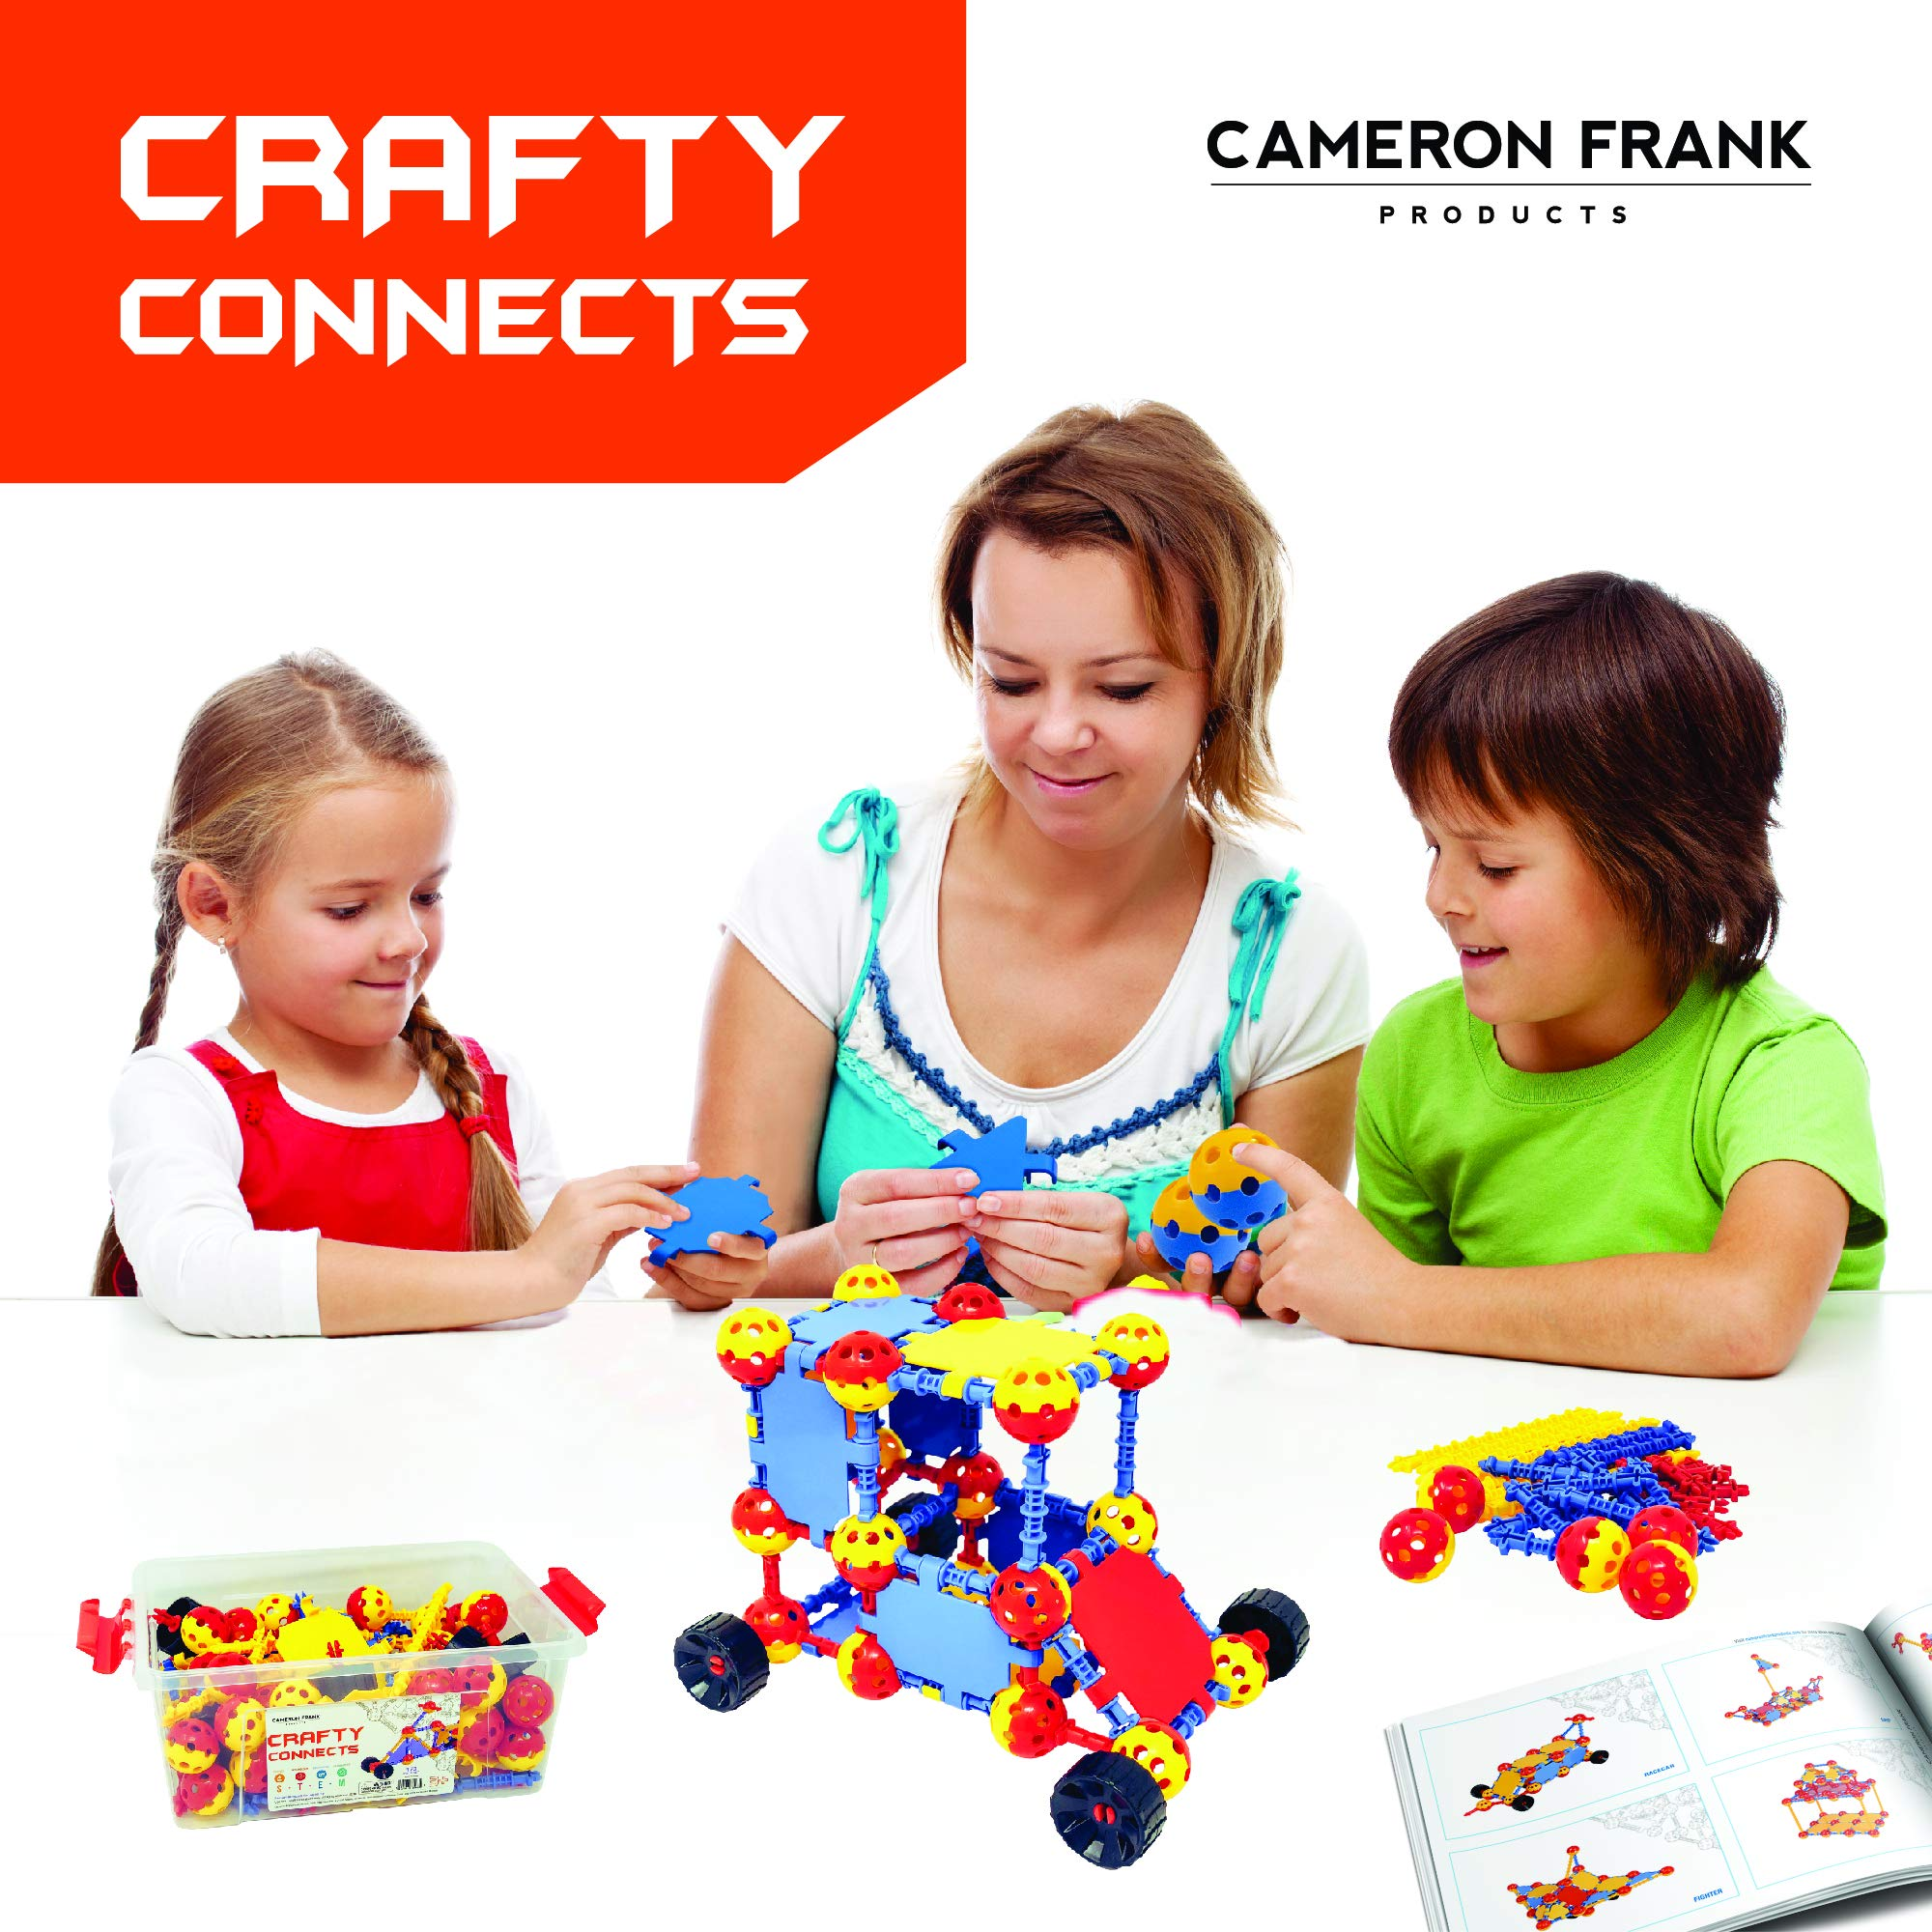 Cameron Frank Products Stem Learning Toys For Boys And Girls Age 3 4